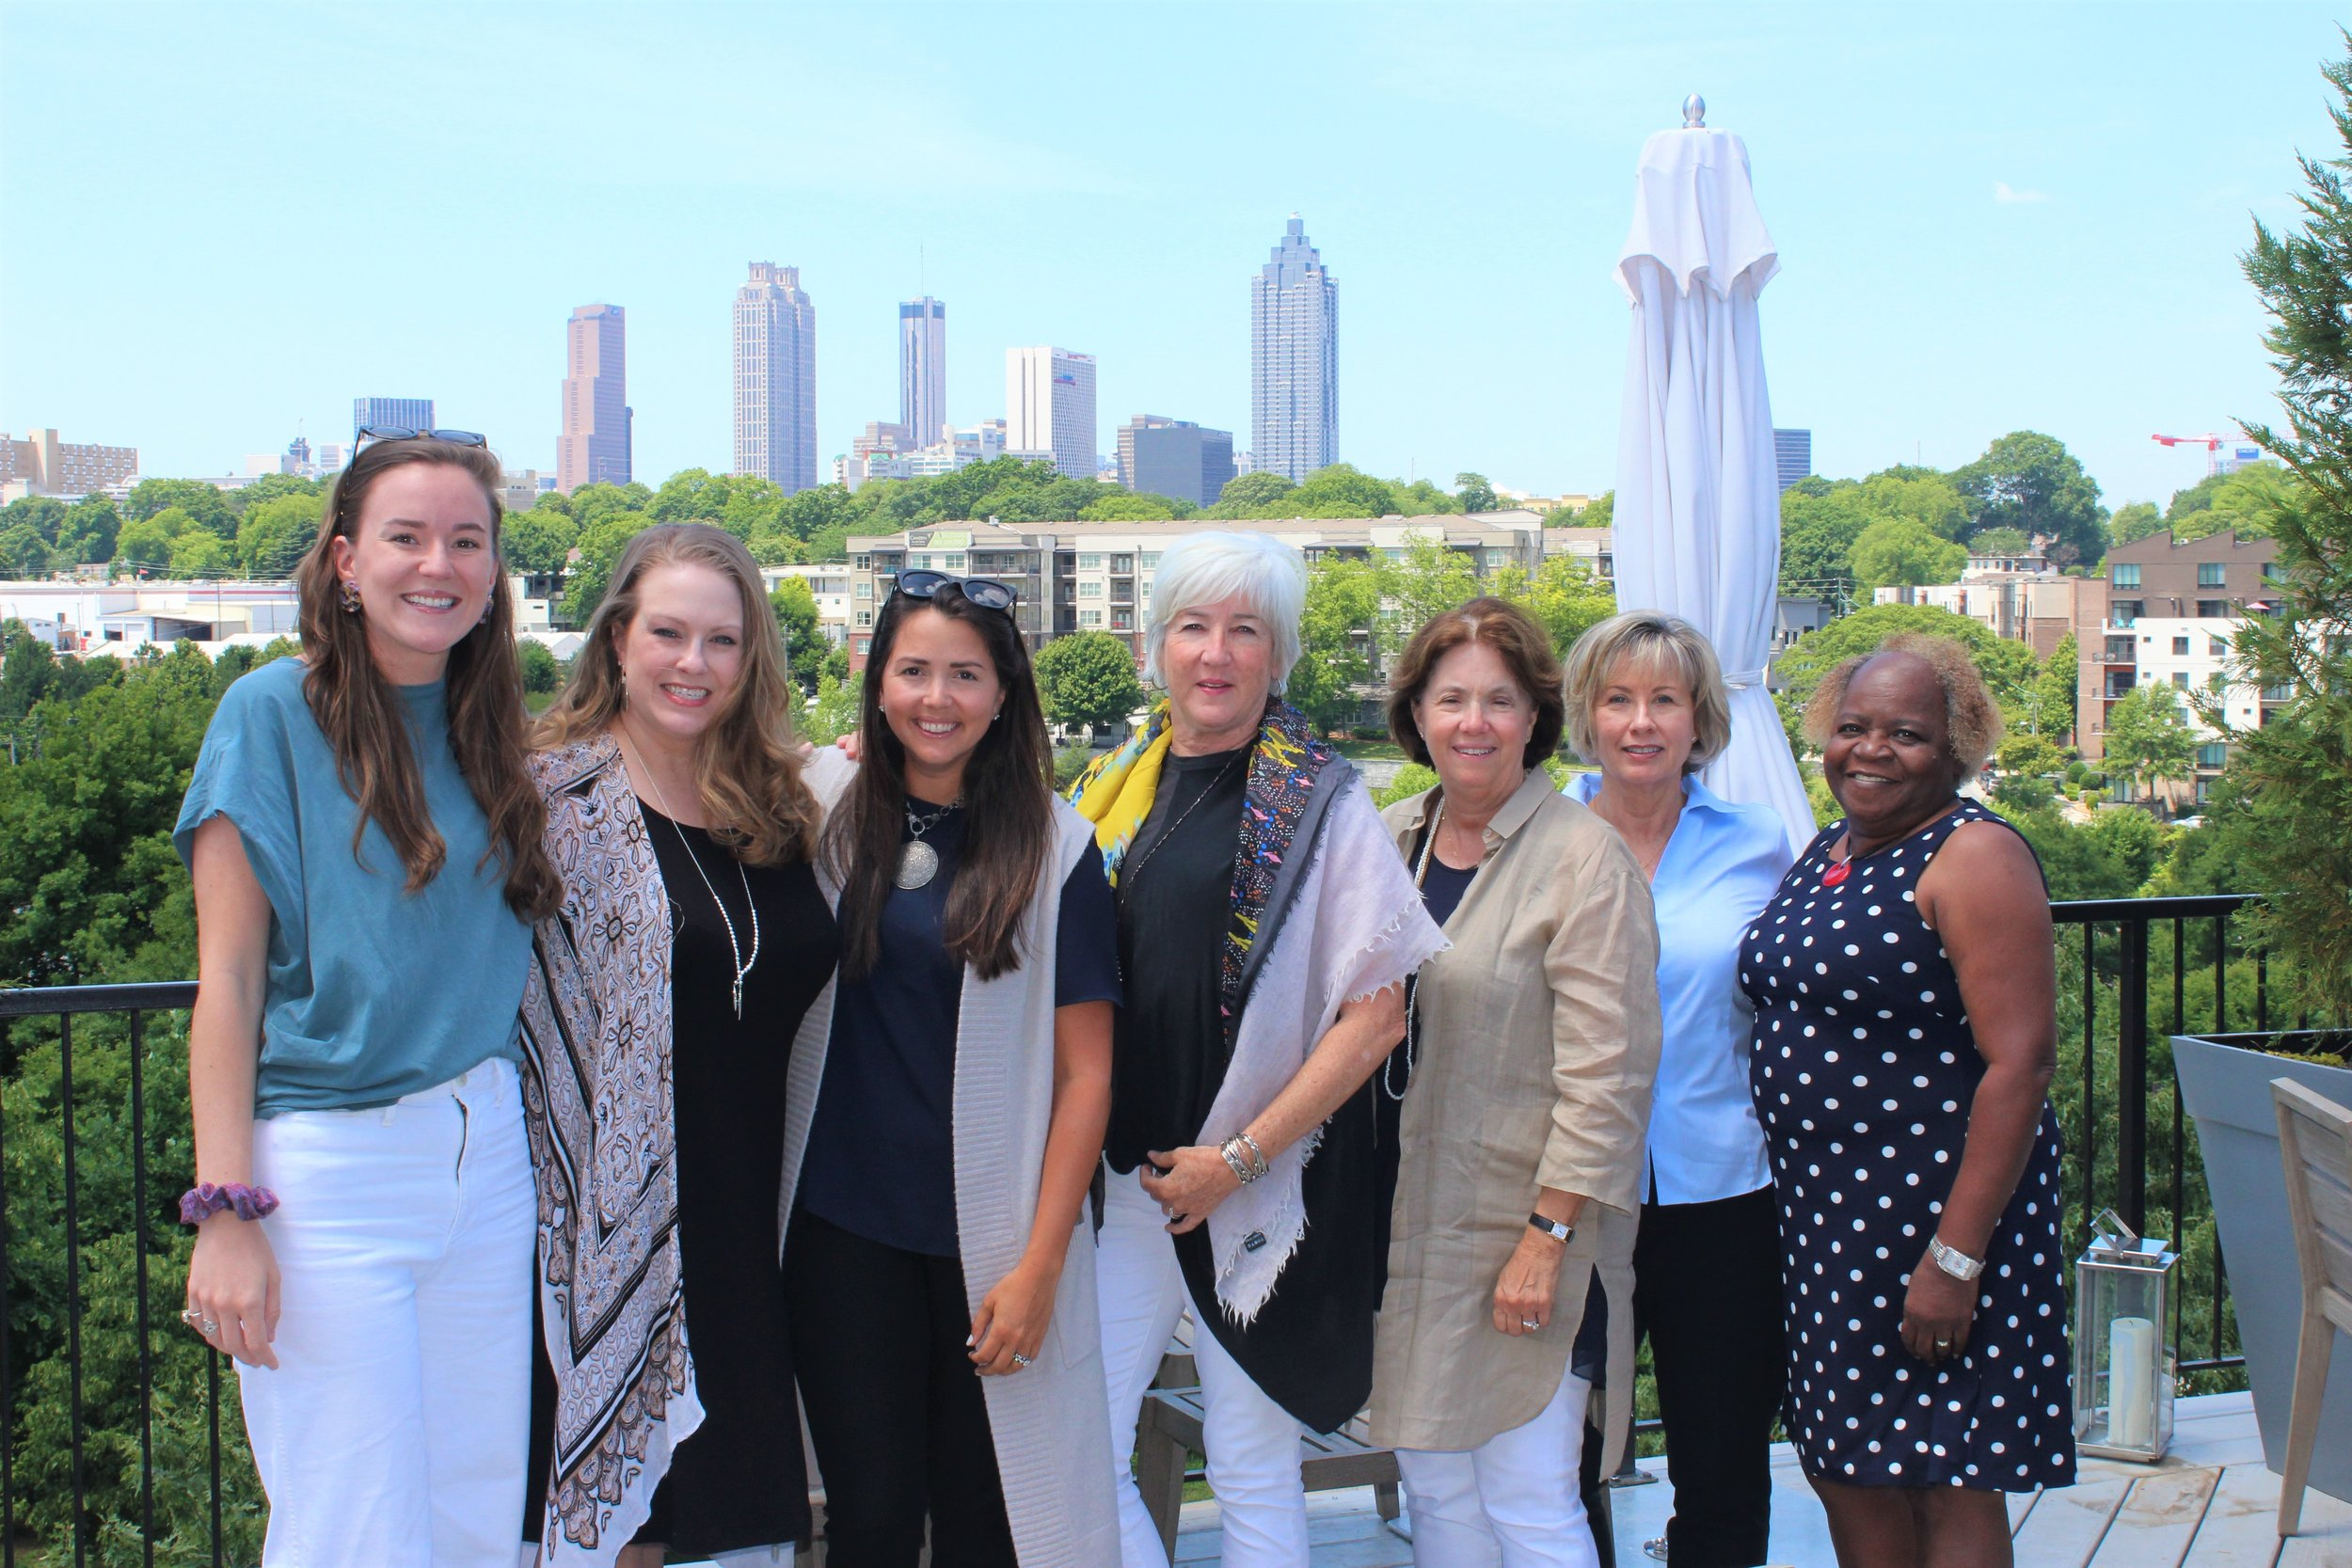 the monarch team from left:  Caitlin Cox, Kimber Biles, Whitney Wood, Patti McCarthy, Mary Lynne Thompson, Debbie Sachetti, Maxine Fears